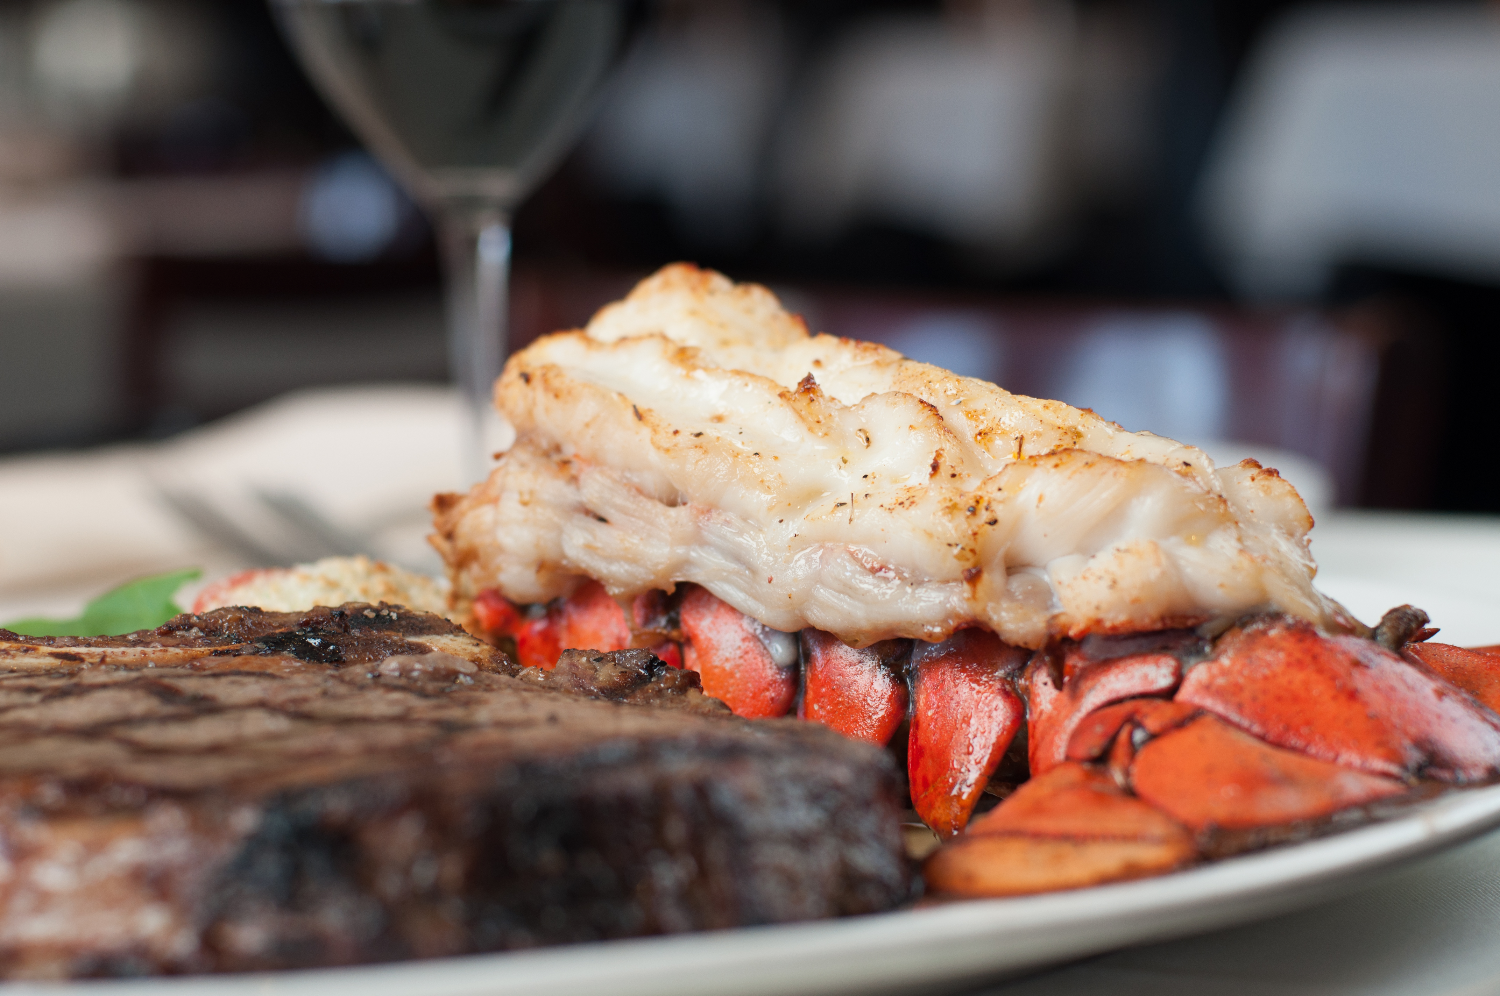 #Lobster tail